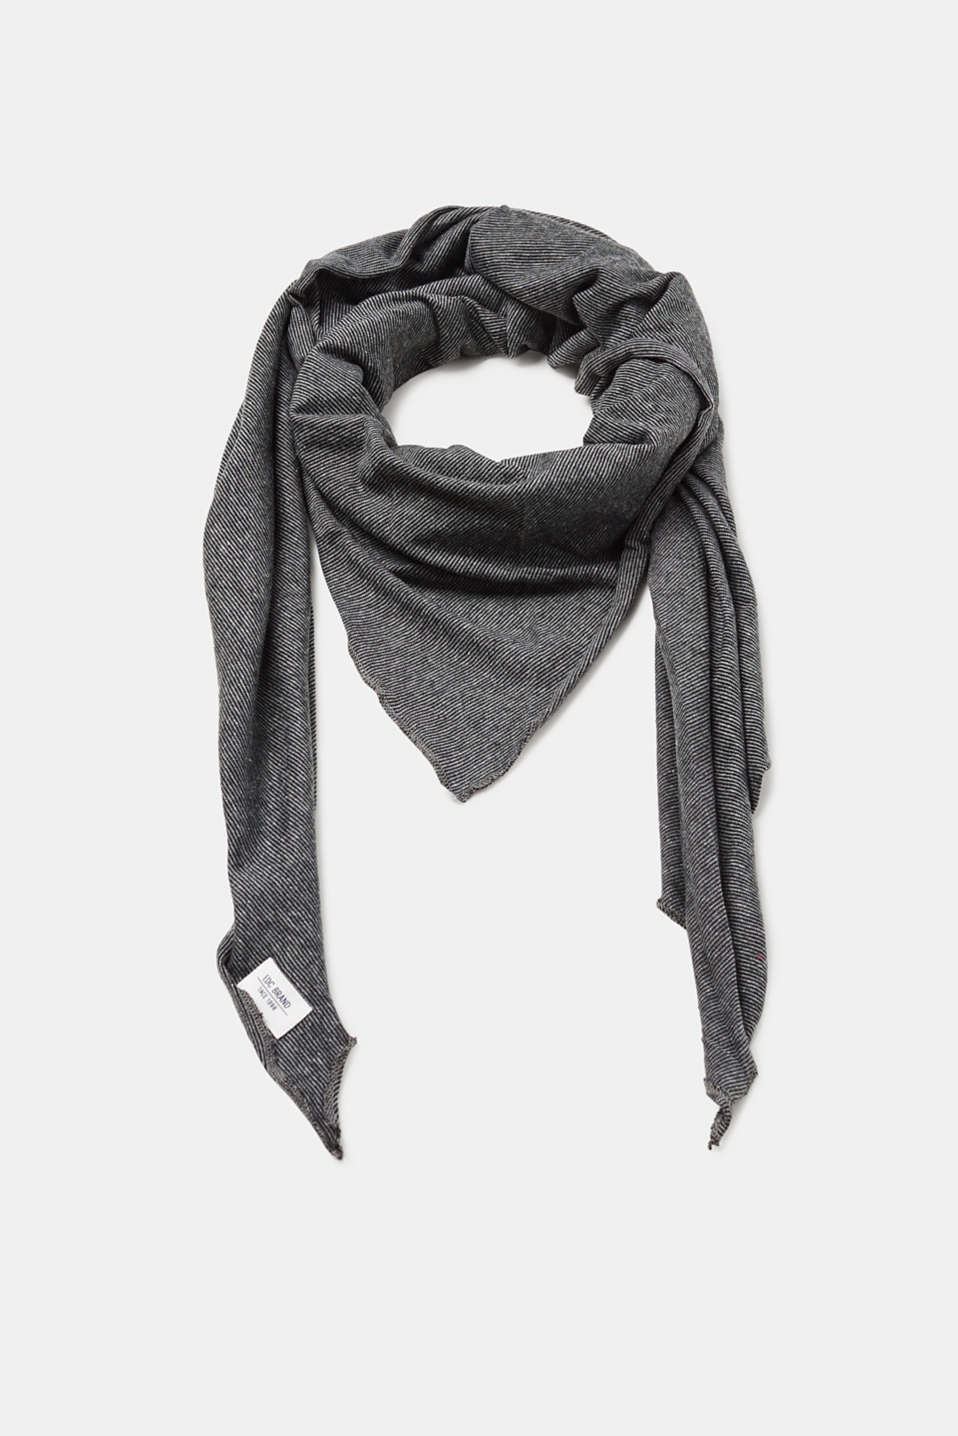 A soft all-rounder! This scarf in a practical triangle shape is versatile.